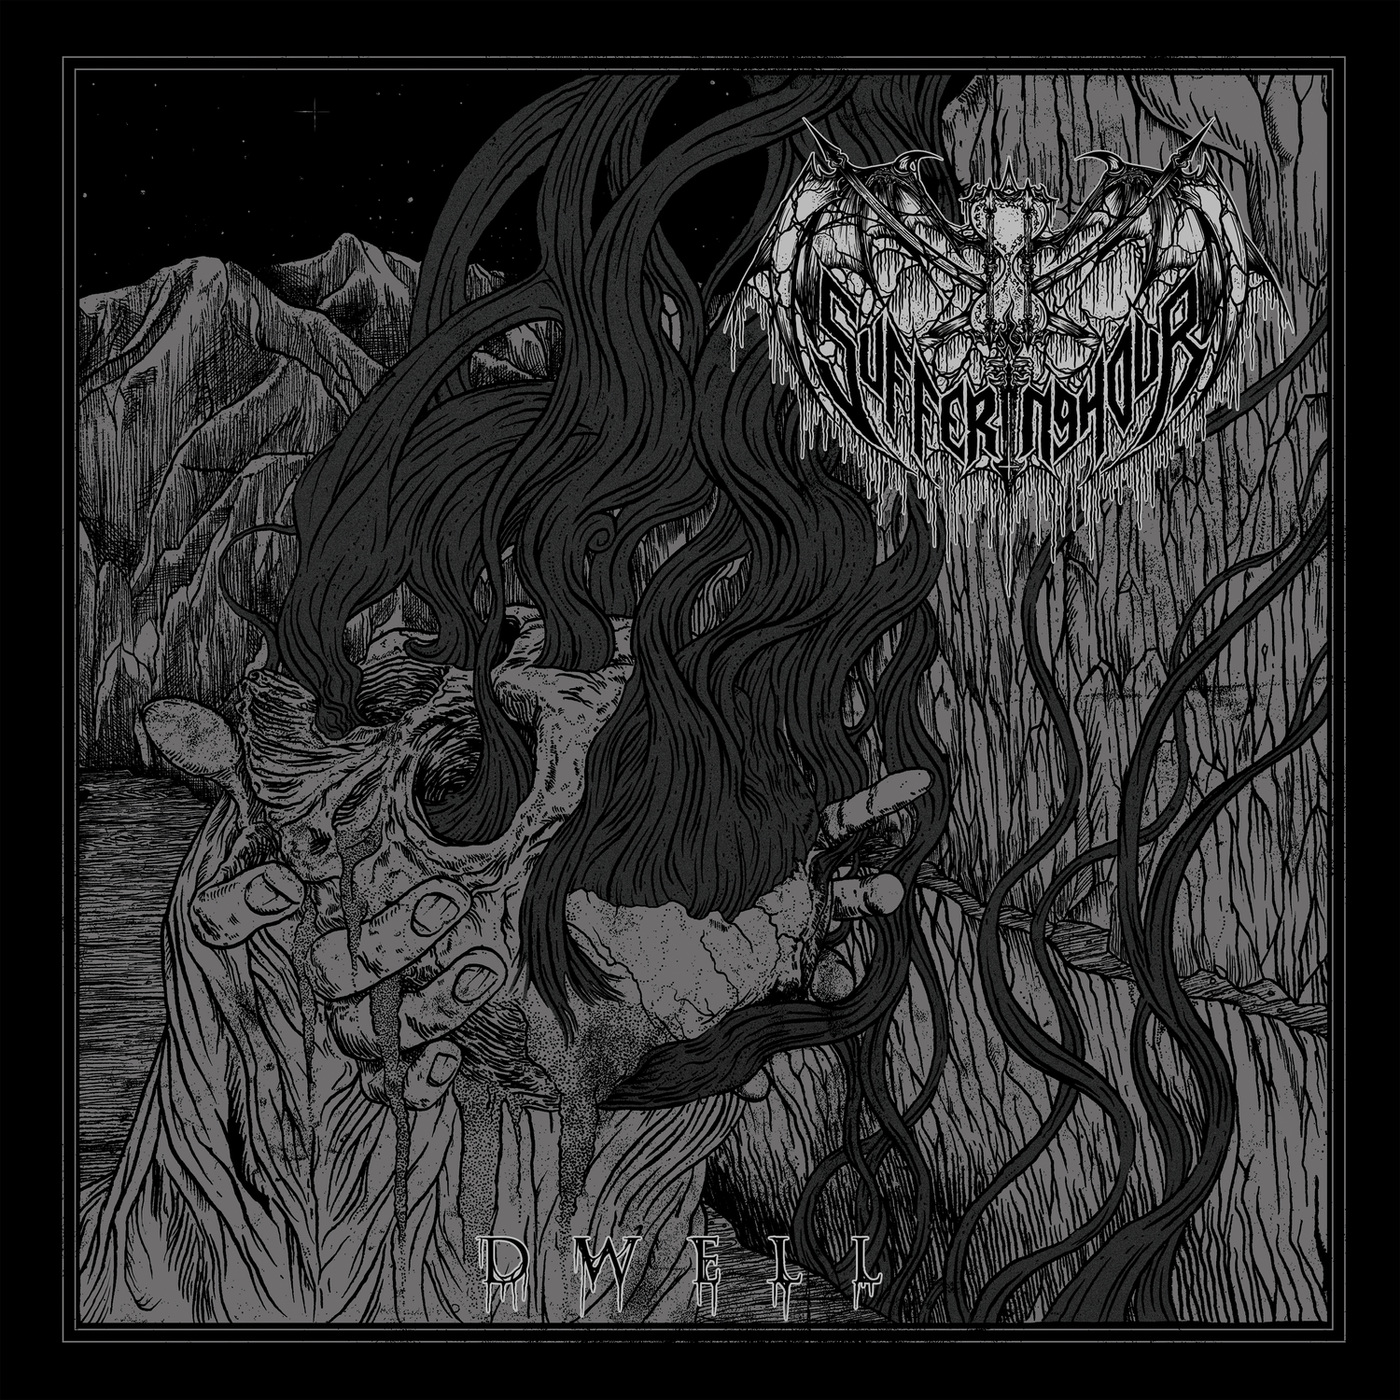 Suffering Hour - Dwell - 2019